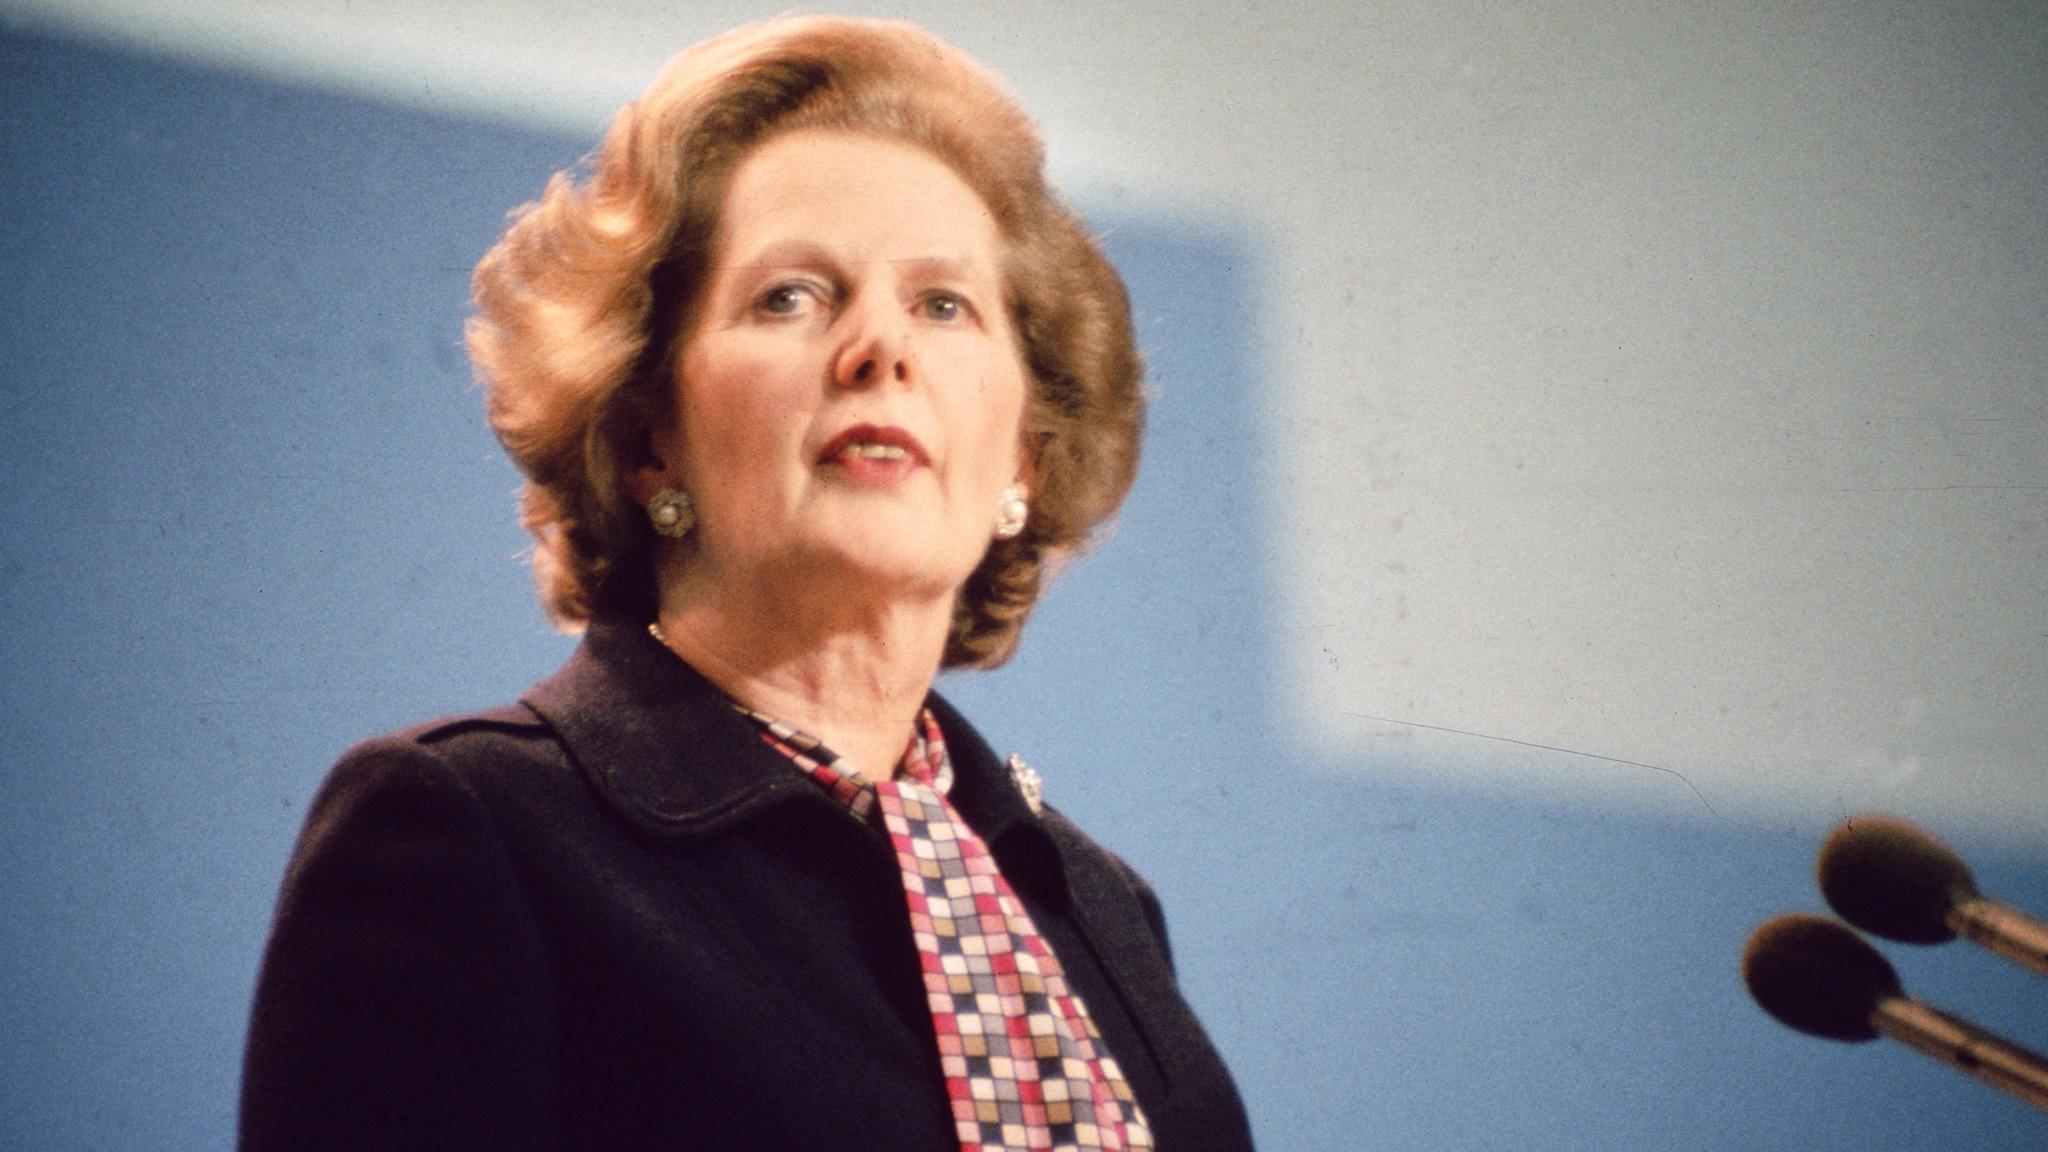 Archives 1984 Thatcher S Bad Holidays And Good Hair Days Financial Times